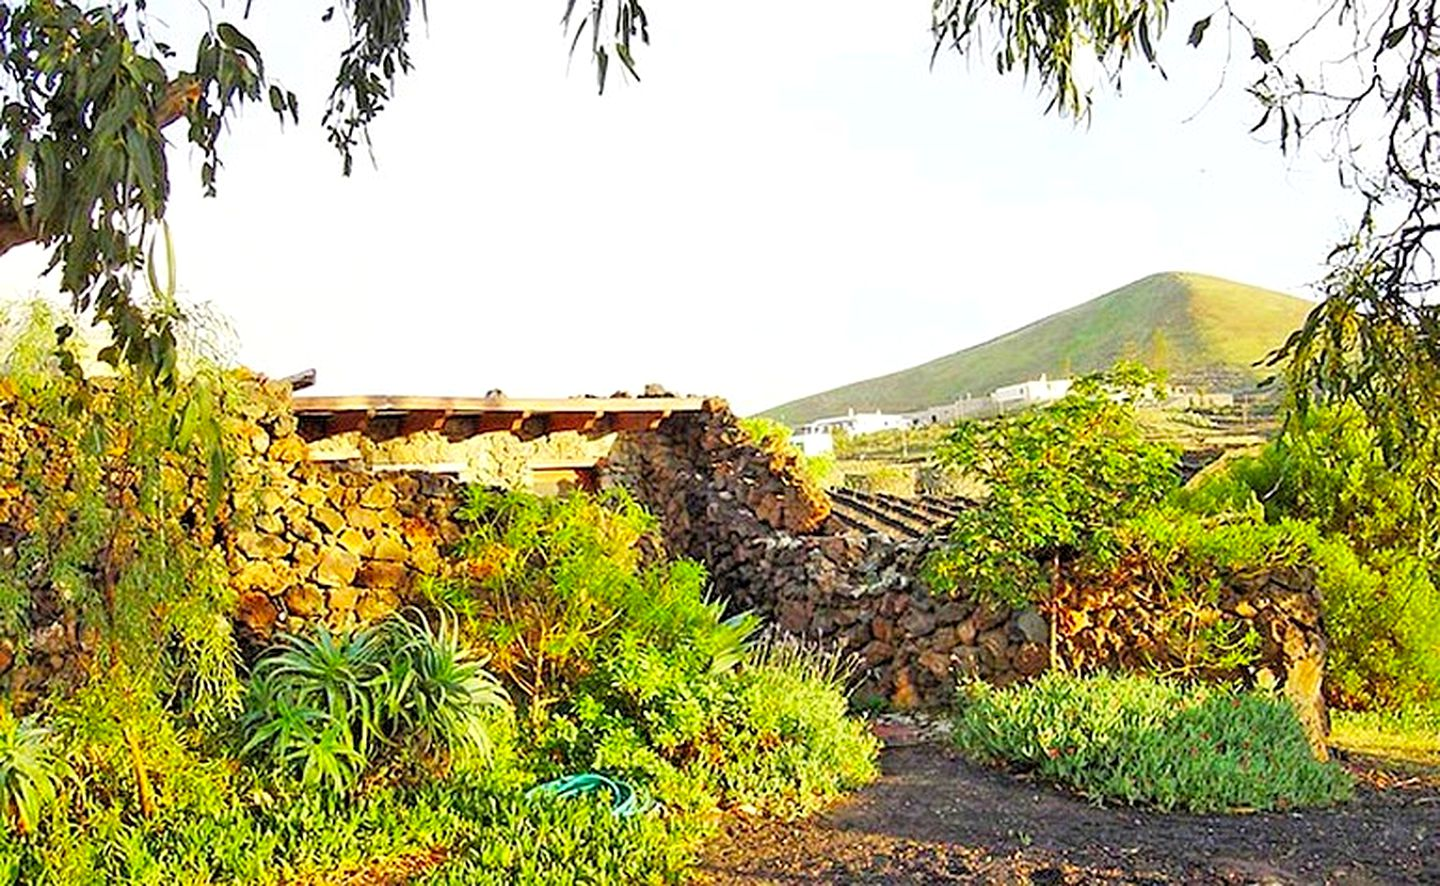 Cottages (Lanzarote, Canary Islands, Spain)